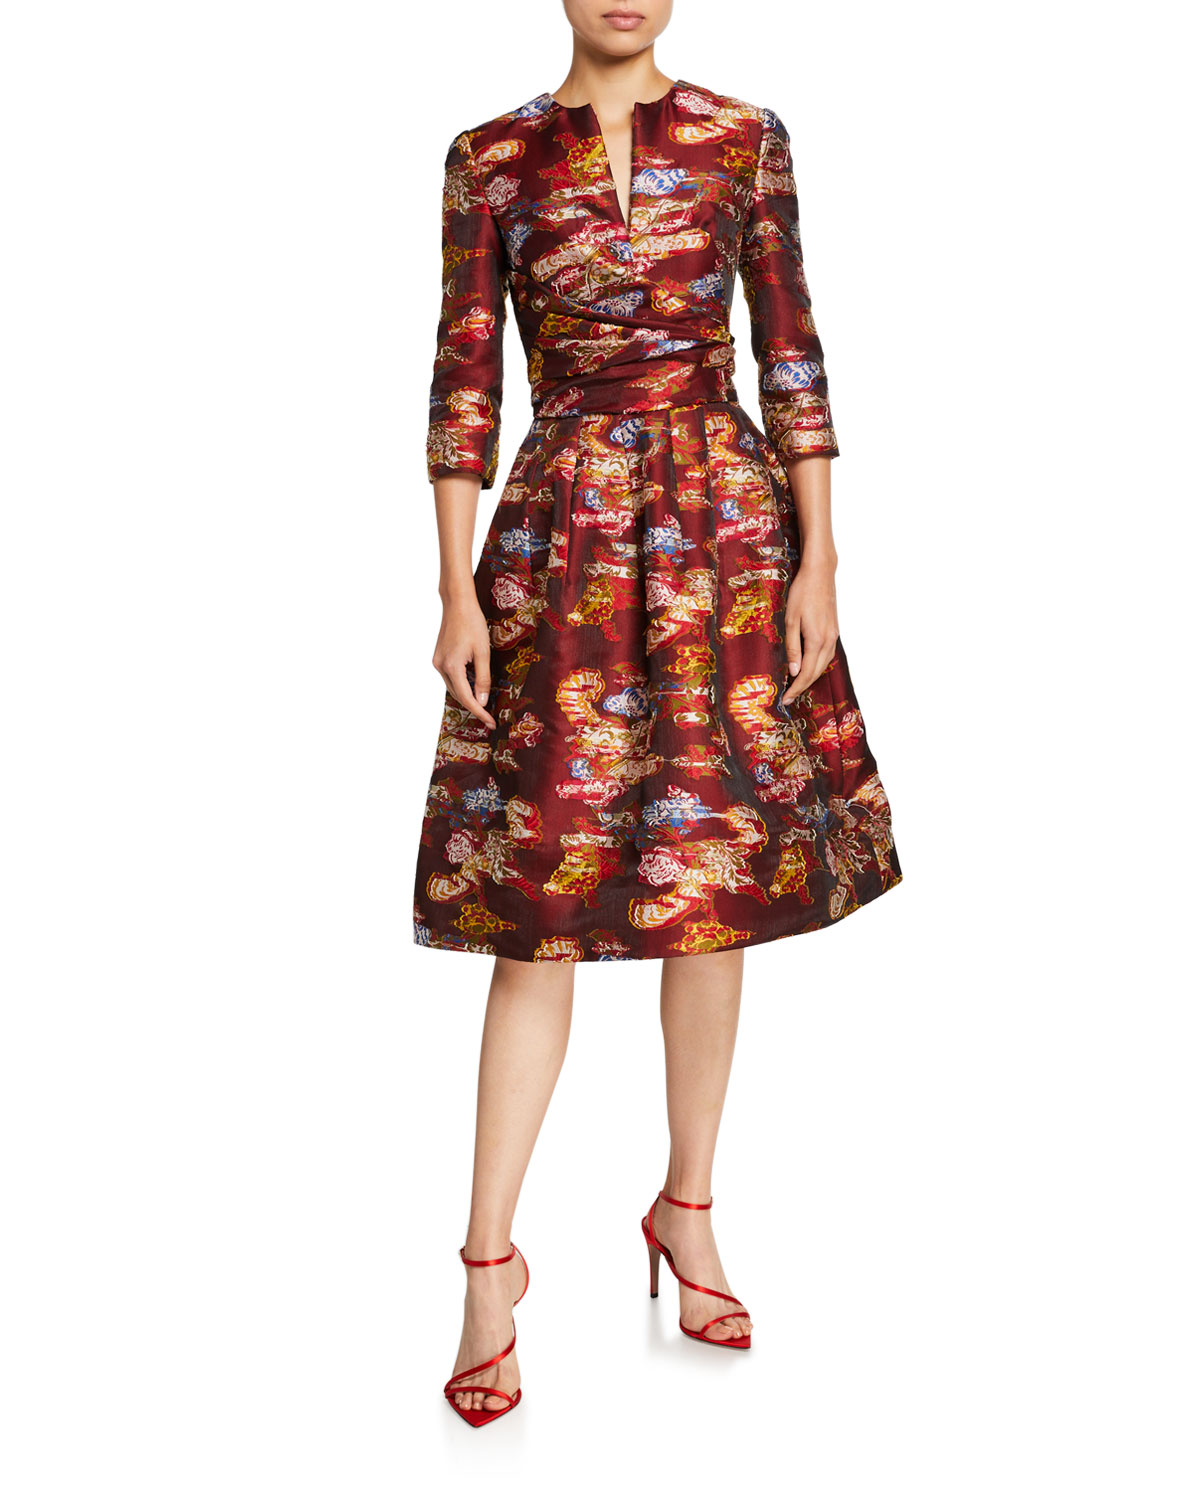 Oscar de la Renta Floral Fil Coupe 3/4-Sleeve Cocktail Dress